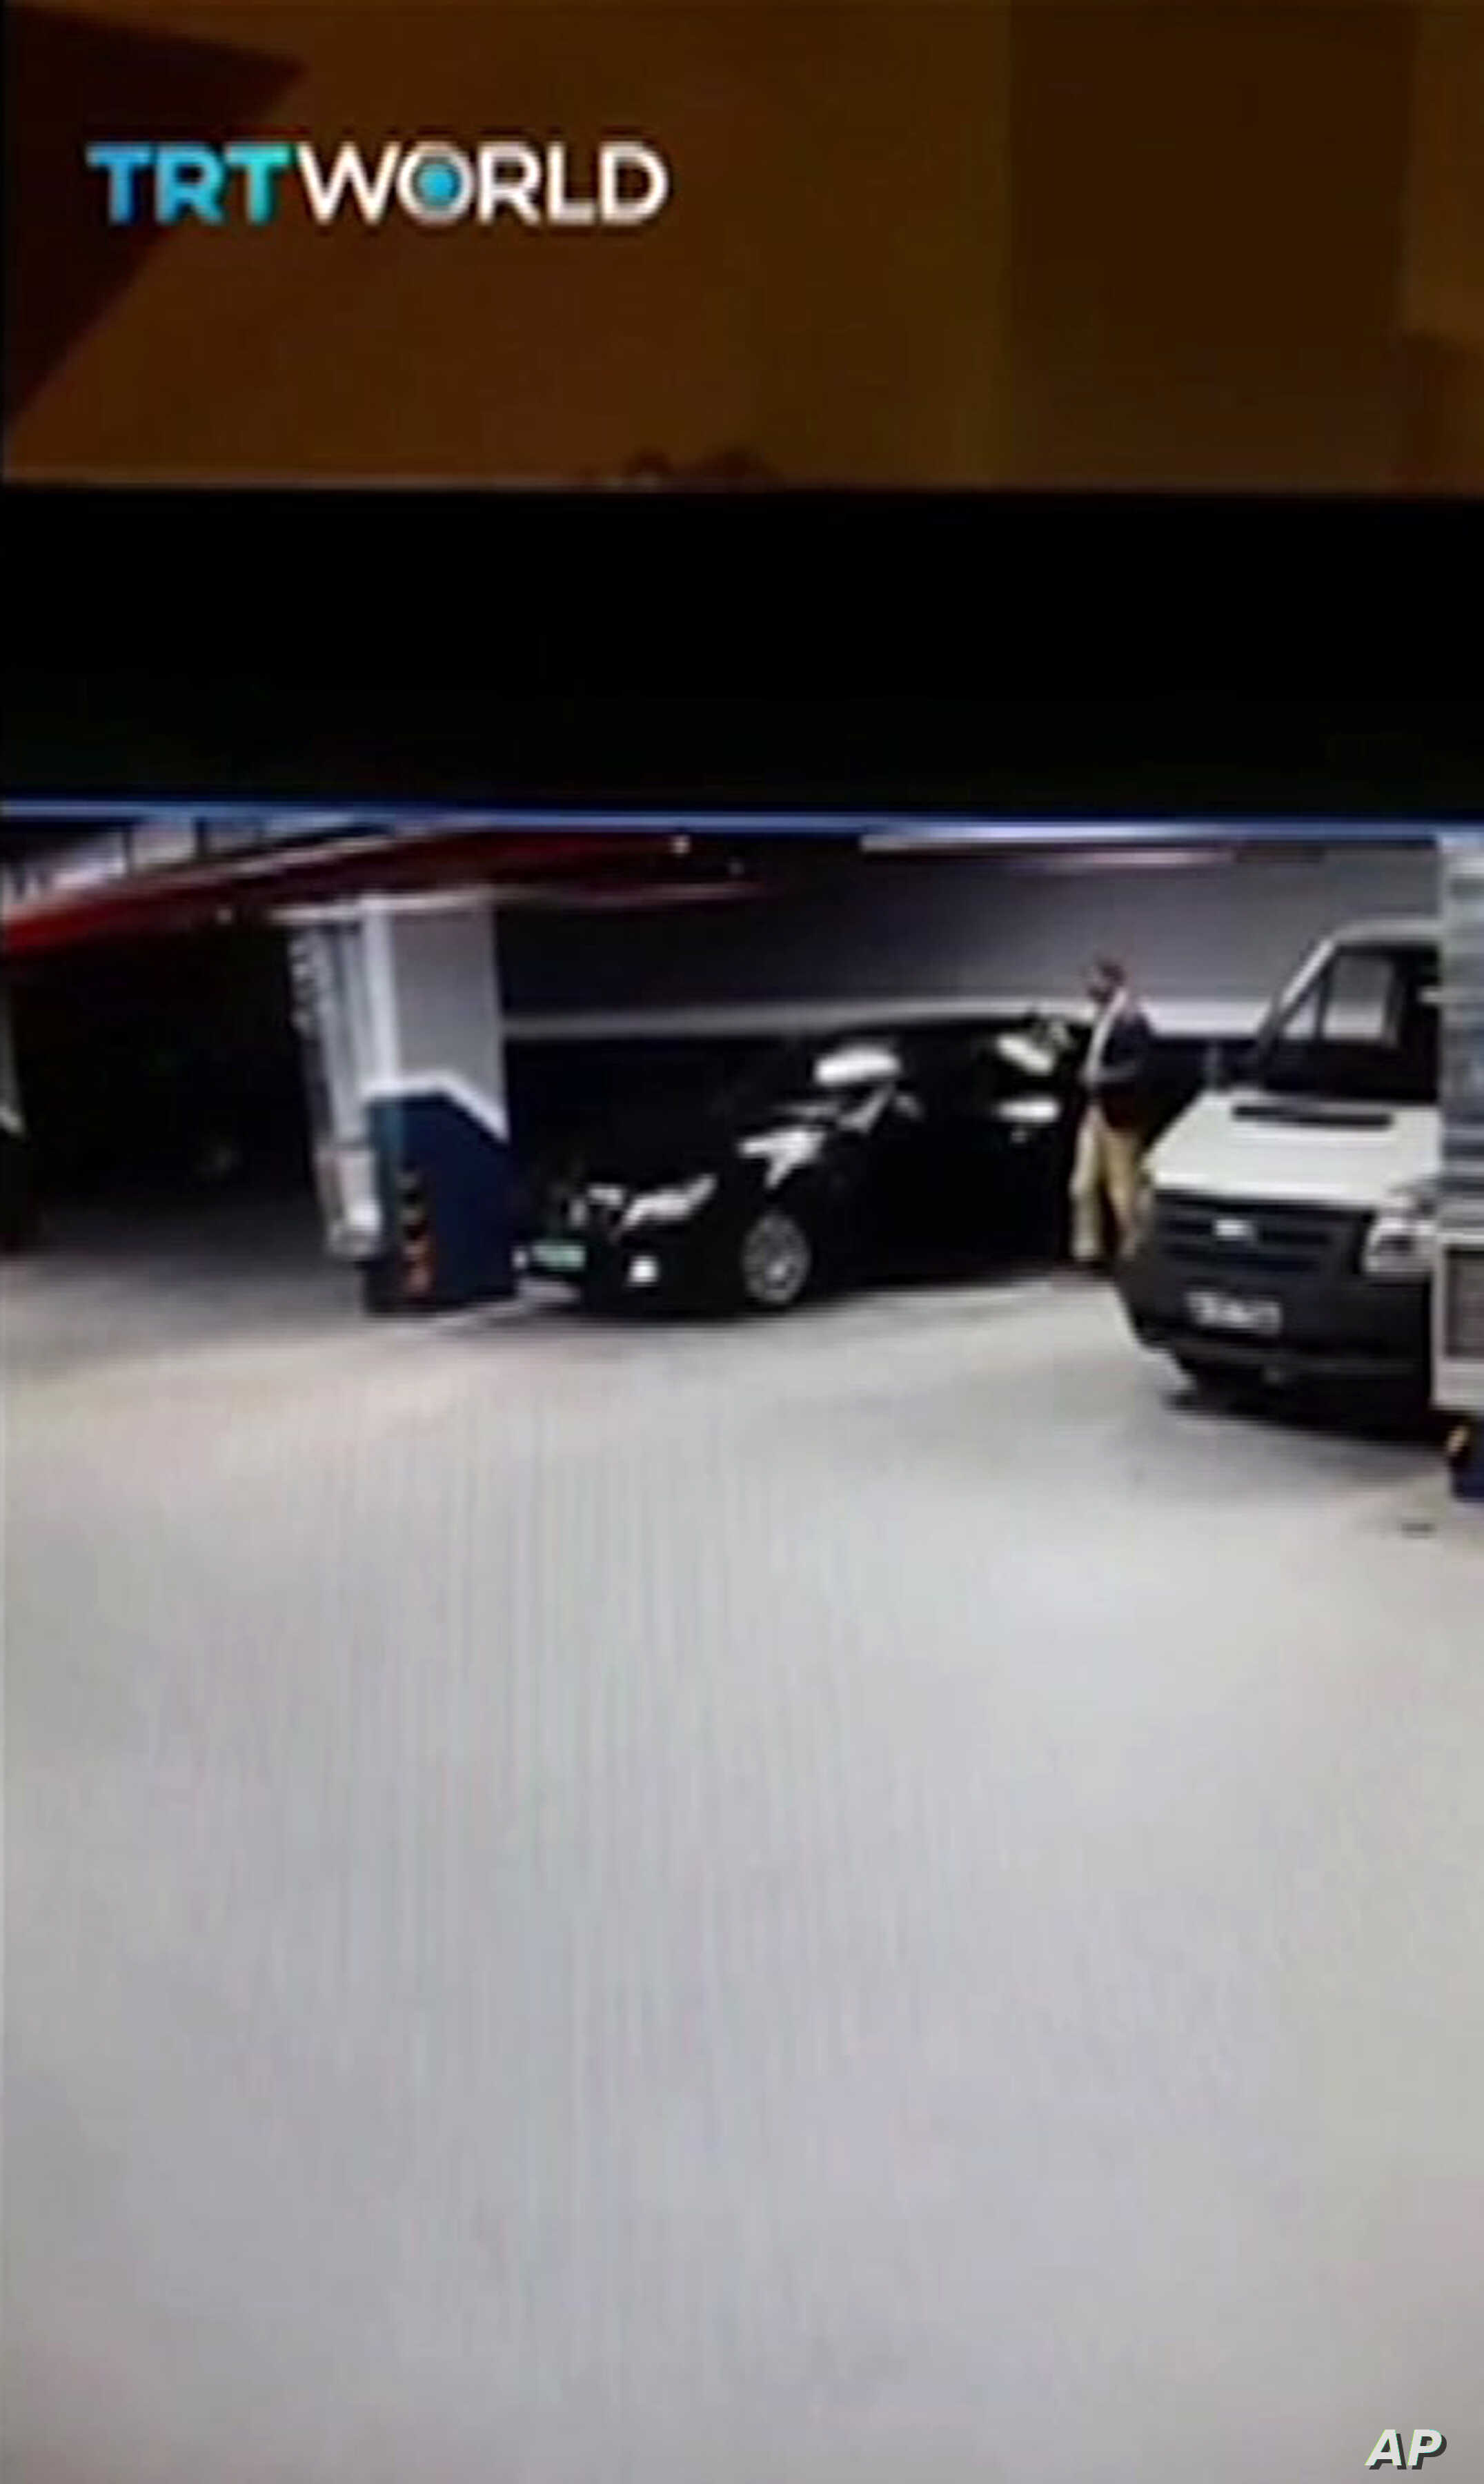 In this CCTV video made available from Turkish TRT TV, Oct. 22, 2018, showing a man getting out of a vehicle seemingly with Saudi consulate plates, at an underground car park in Istanbul.